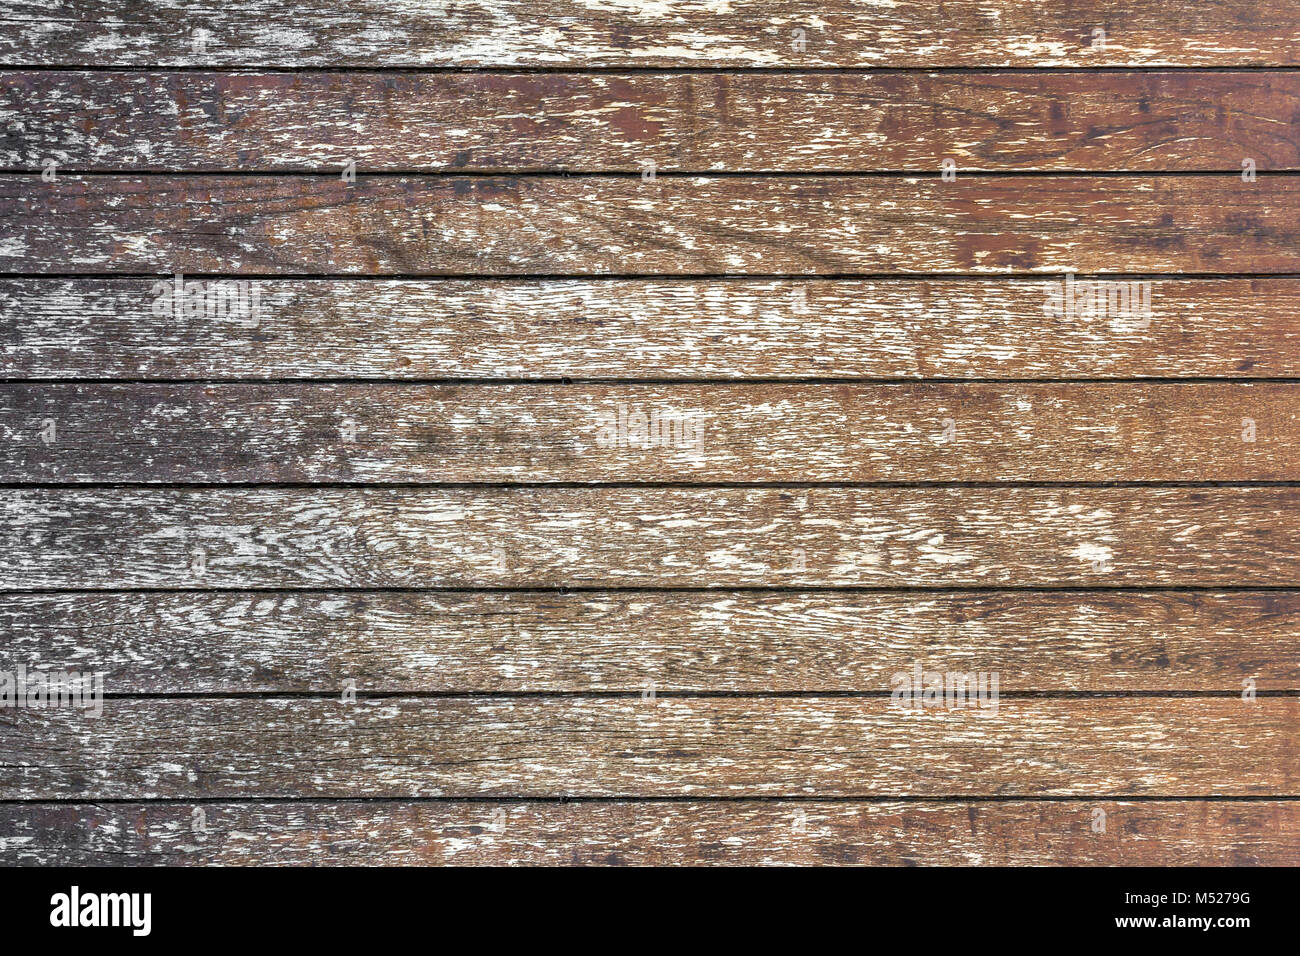 Old wood planks - Stock Image